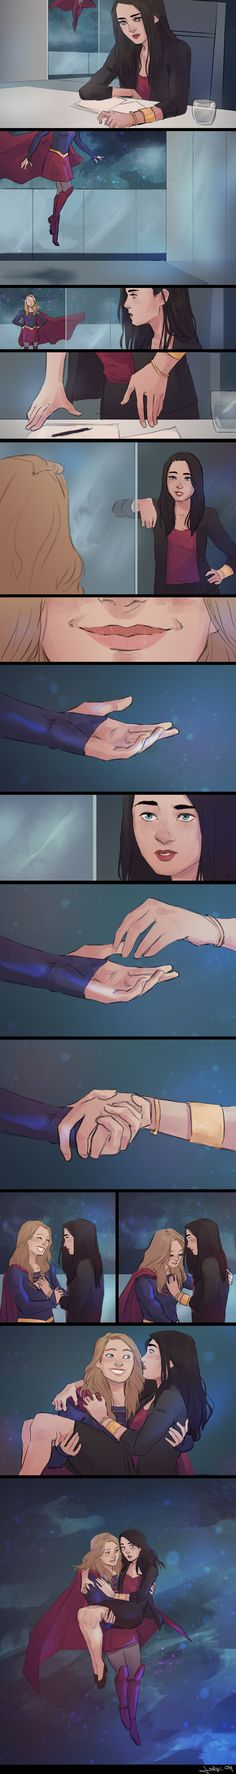 SuperCorp comic by lesly-oh on DeviantArt